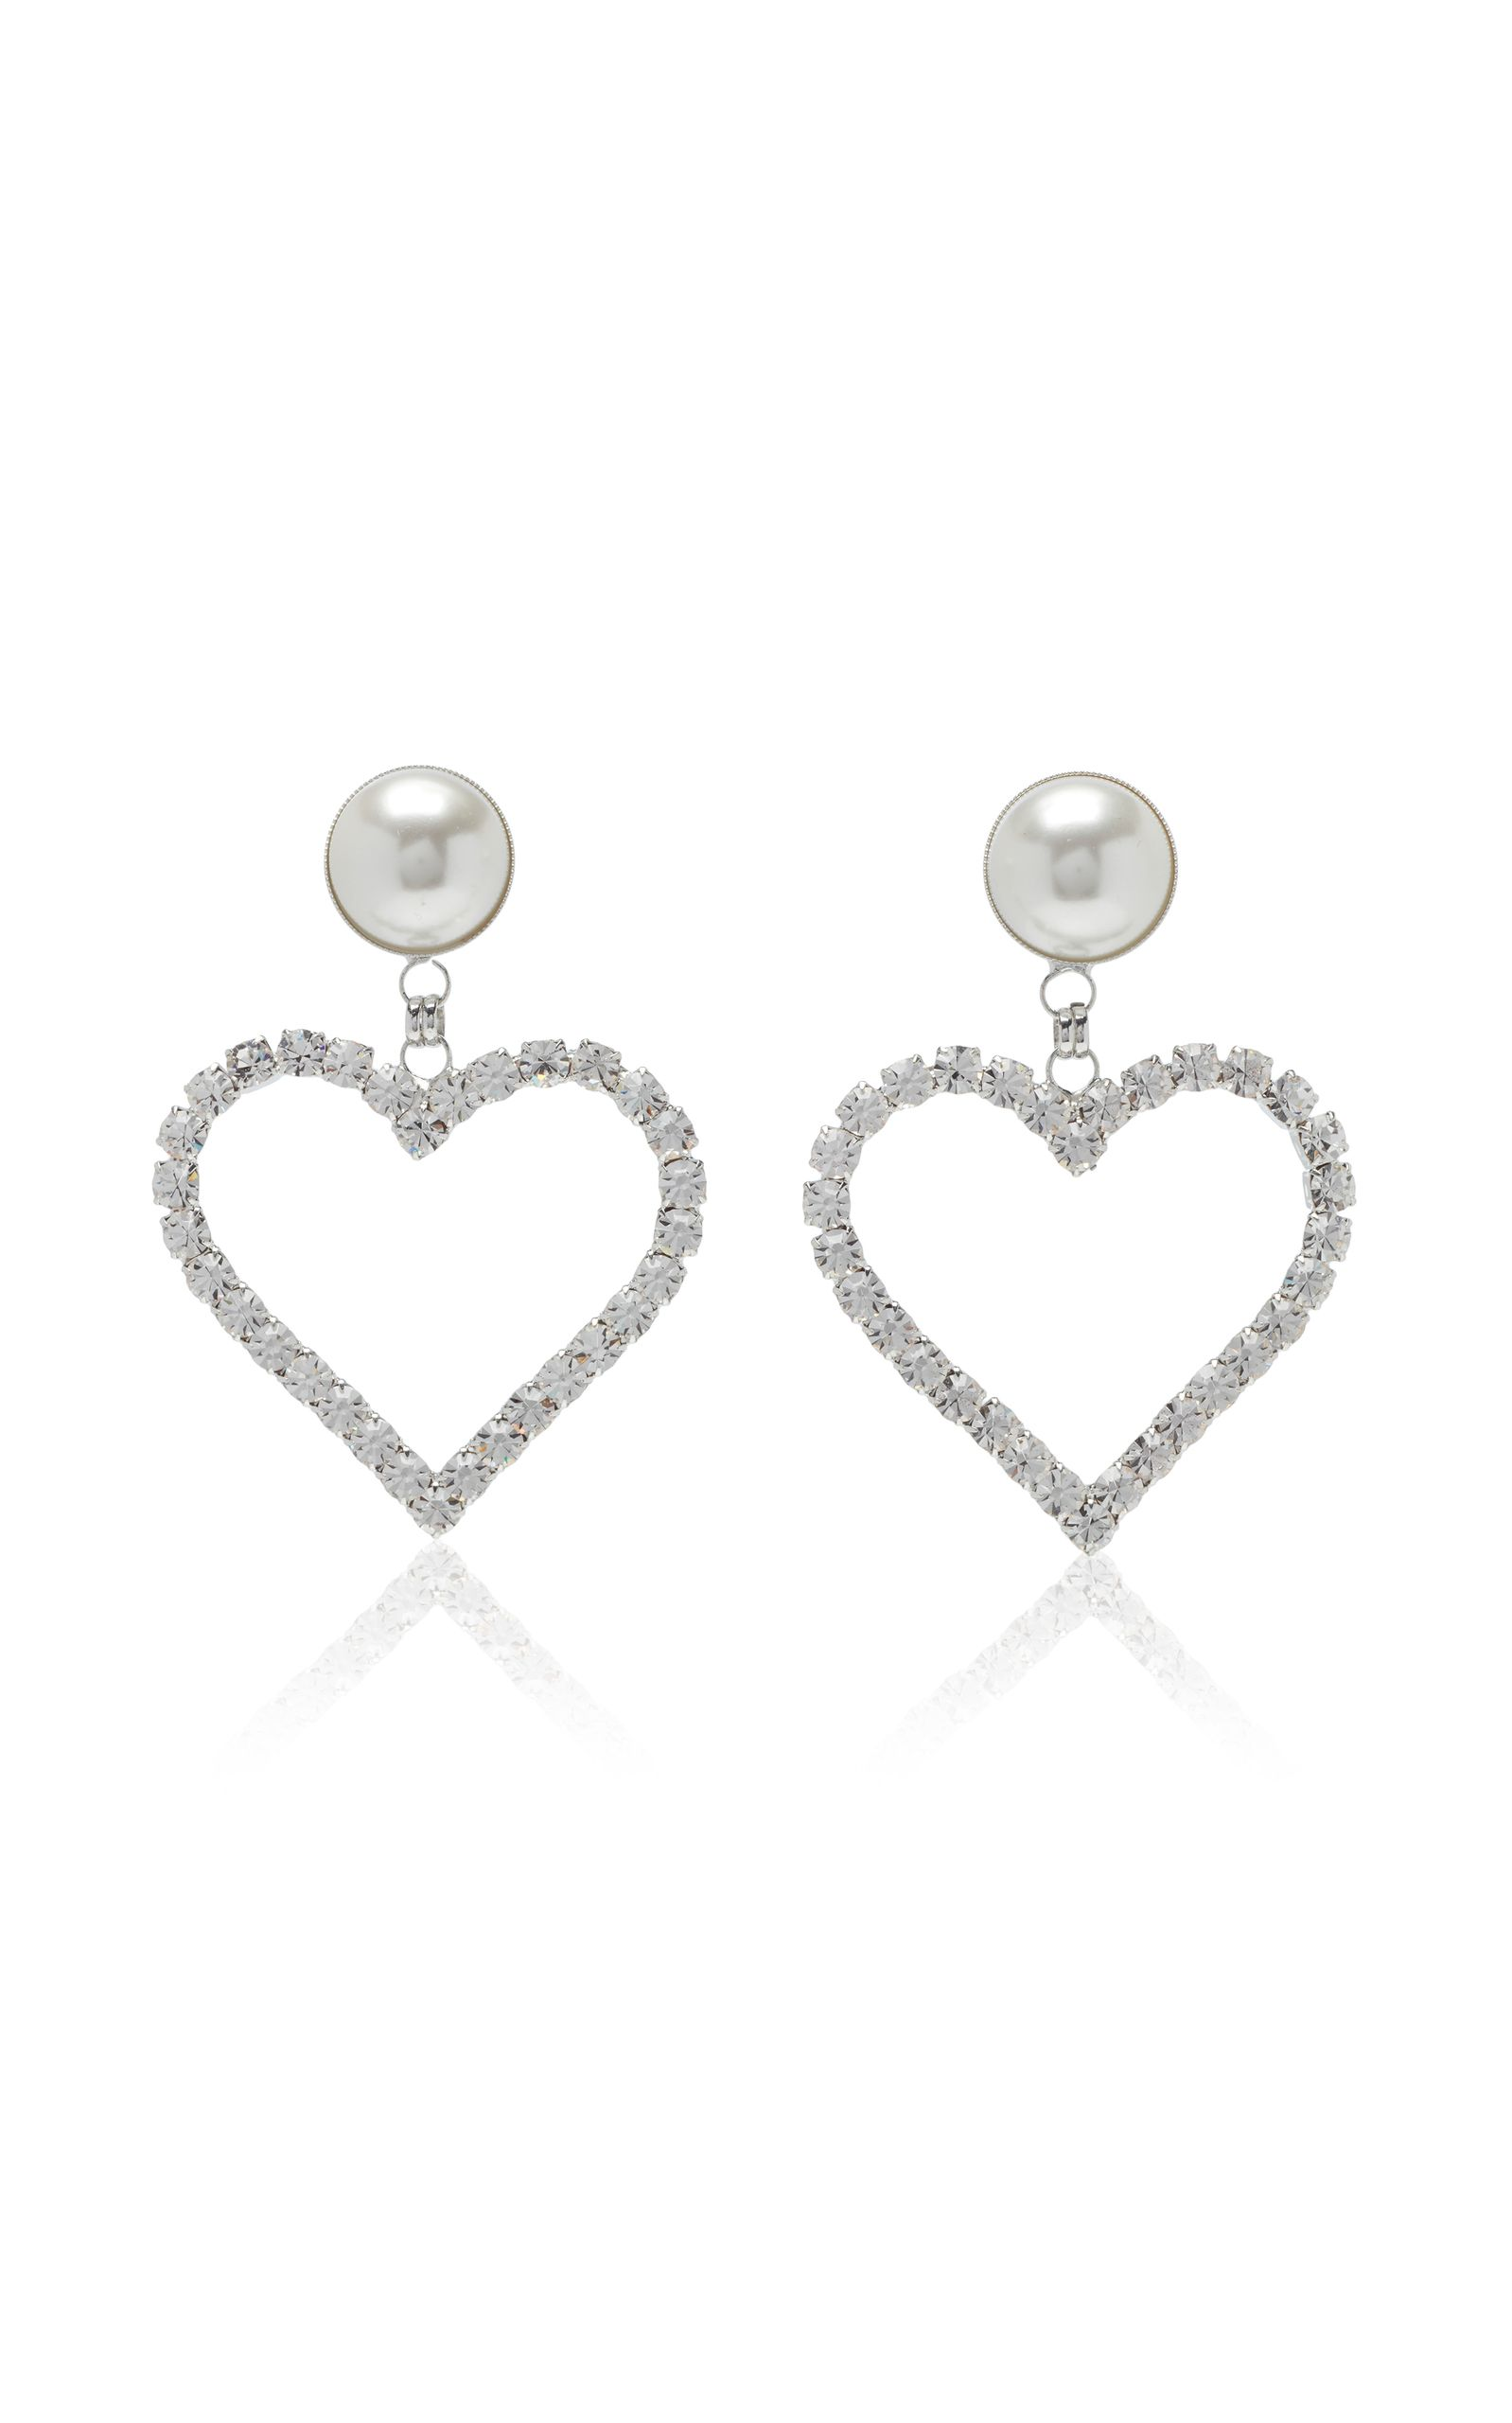 a2ff807833e0 Alessandra Rich heart earrings Pendientes De Corazón